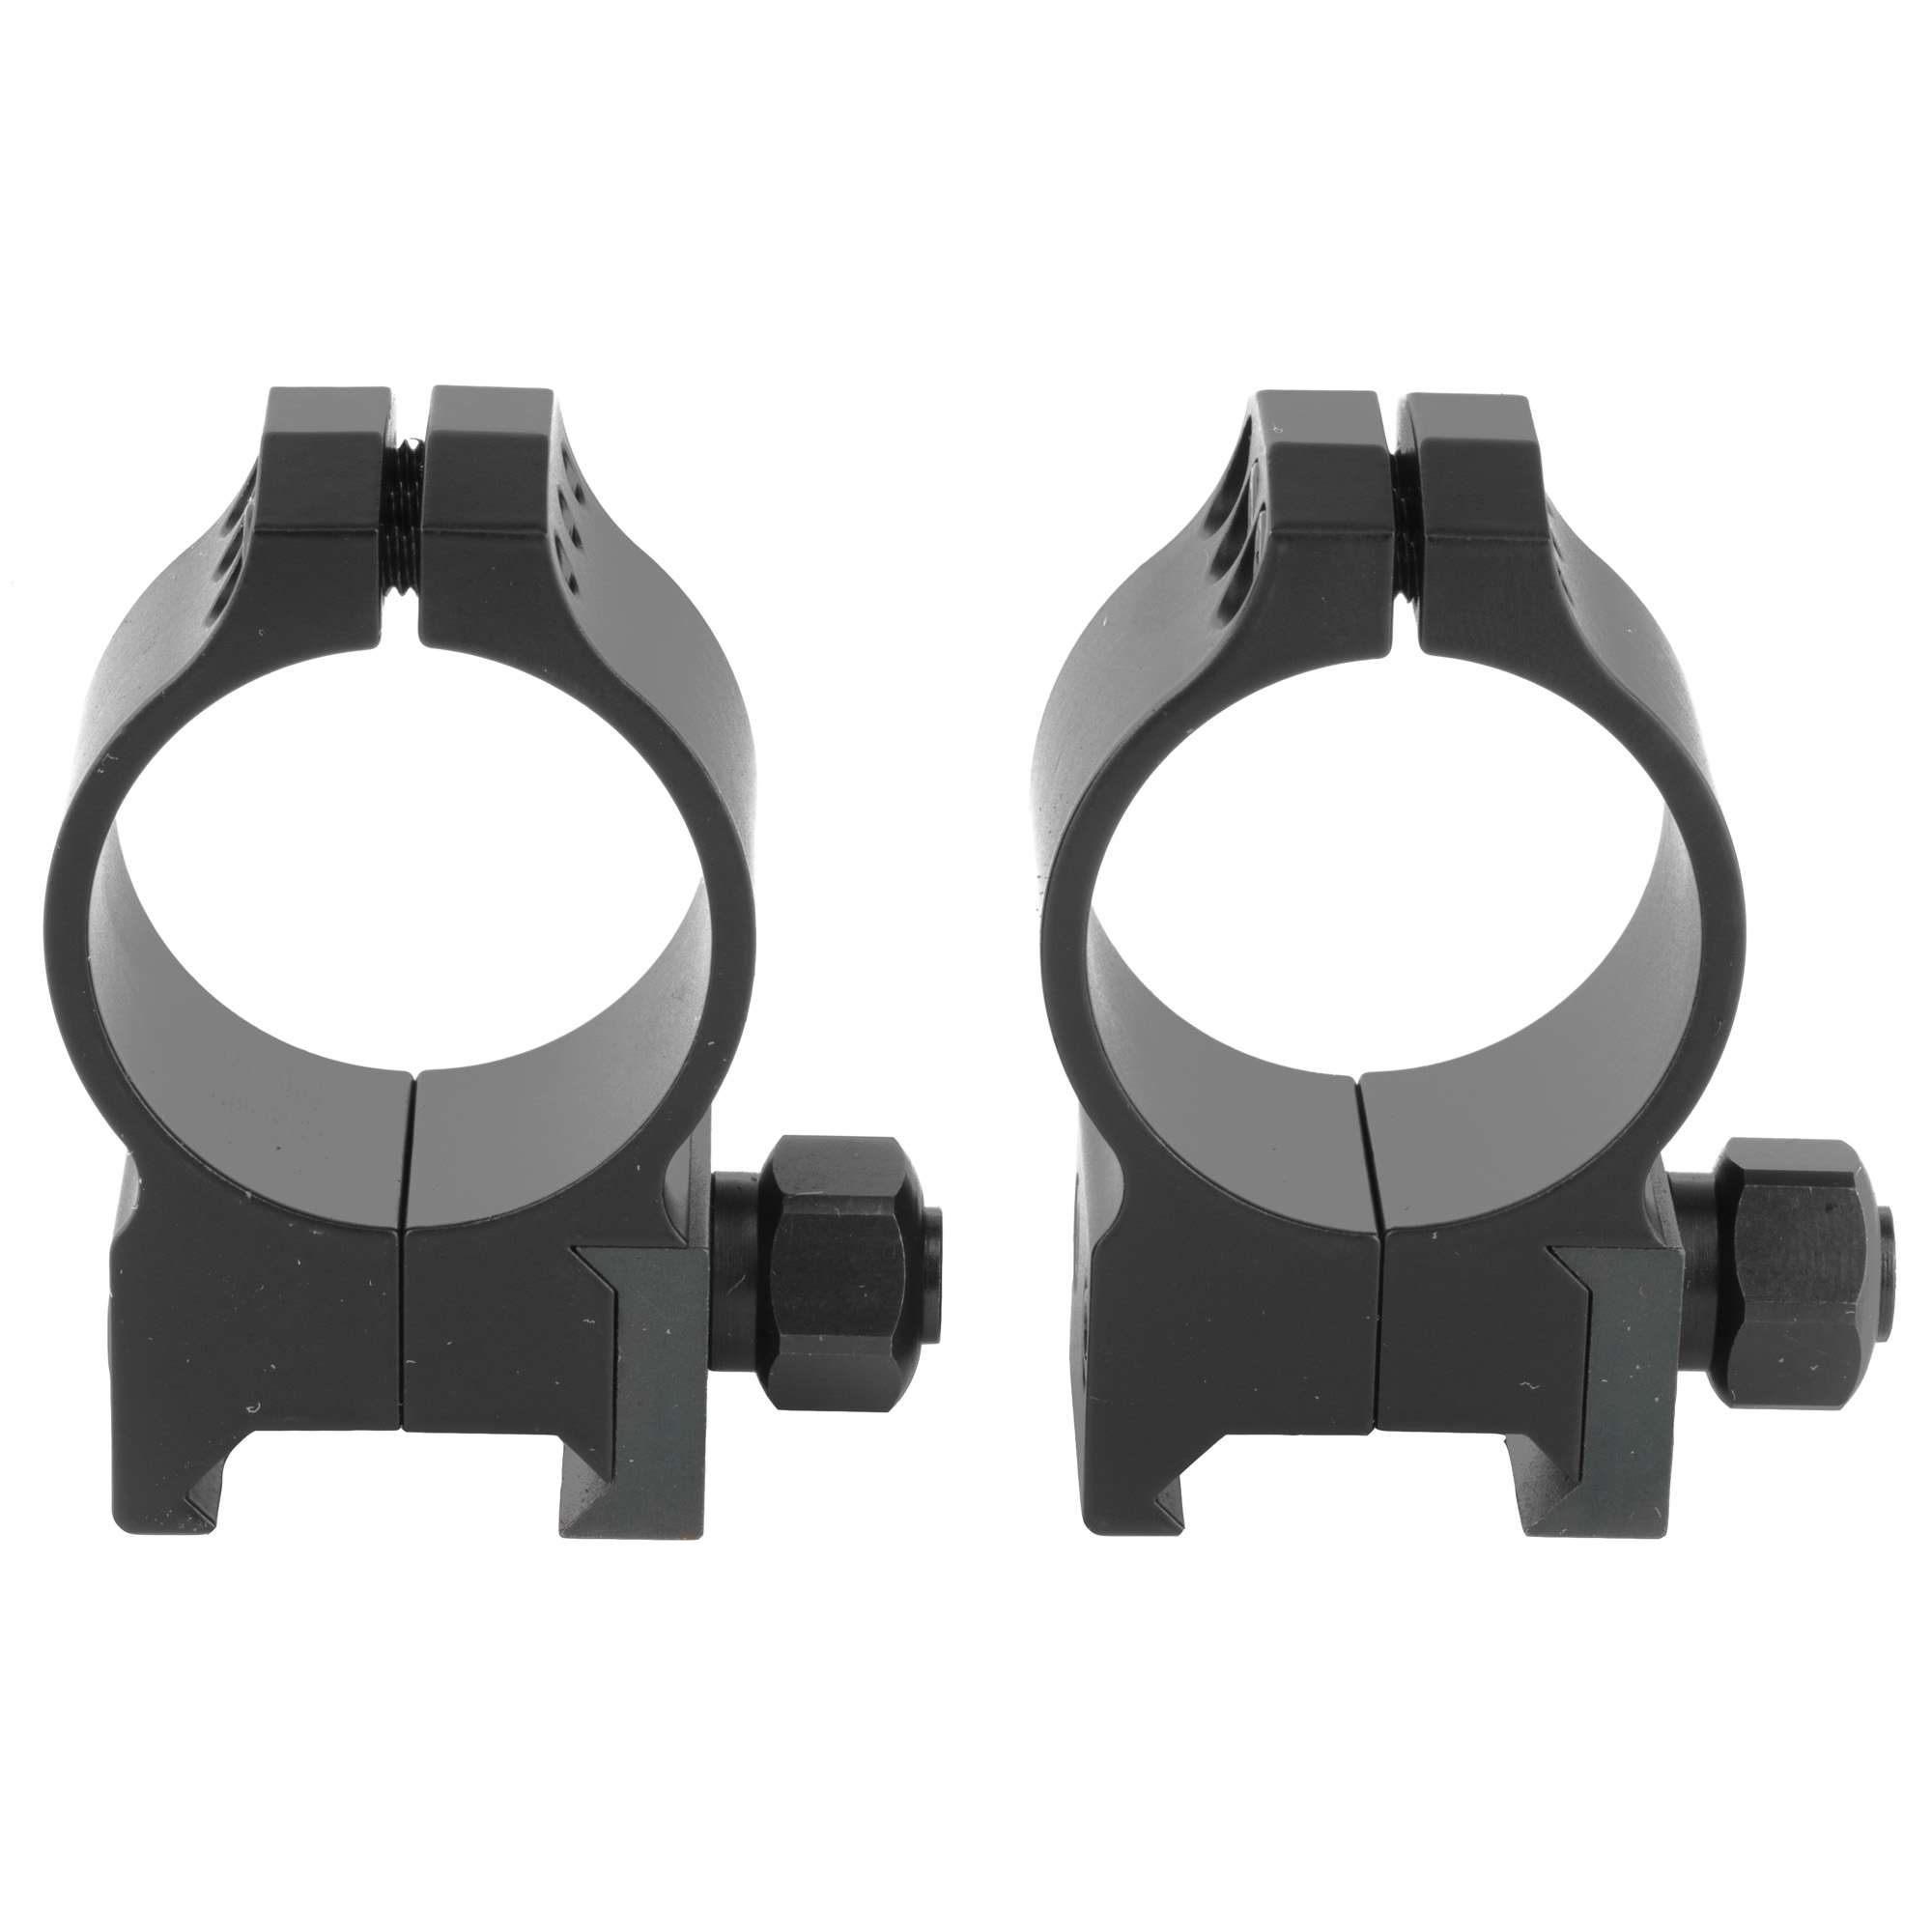 Warne Scope Mounts Warne Tactical 30mm Med Matte Rings